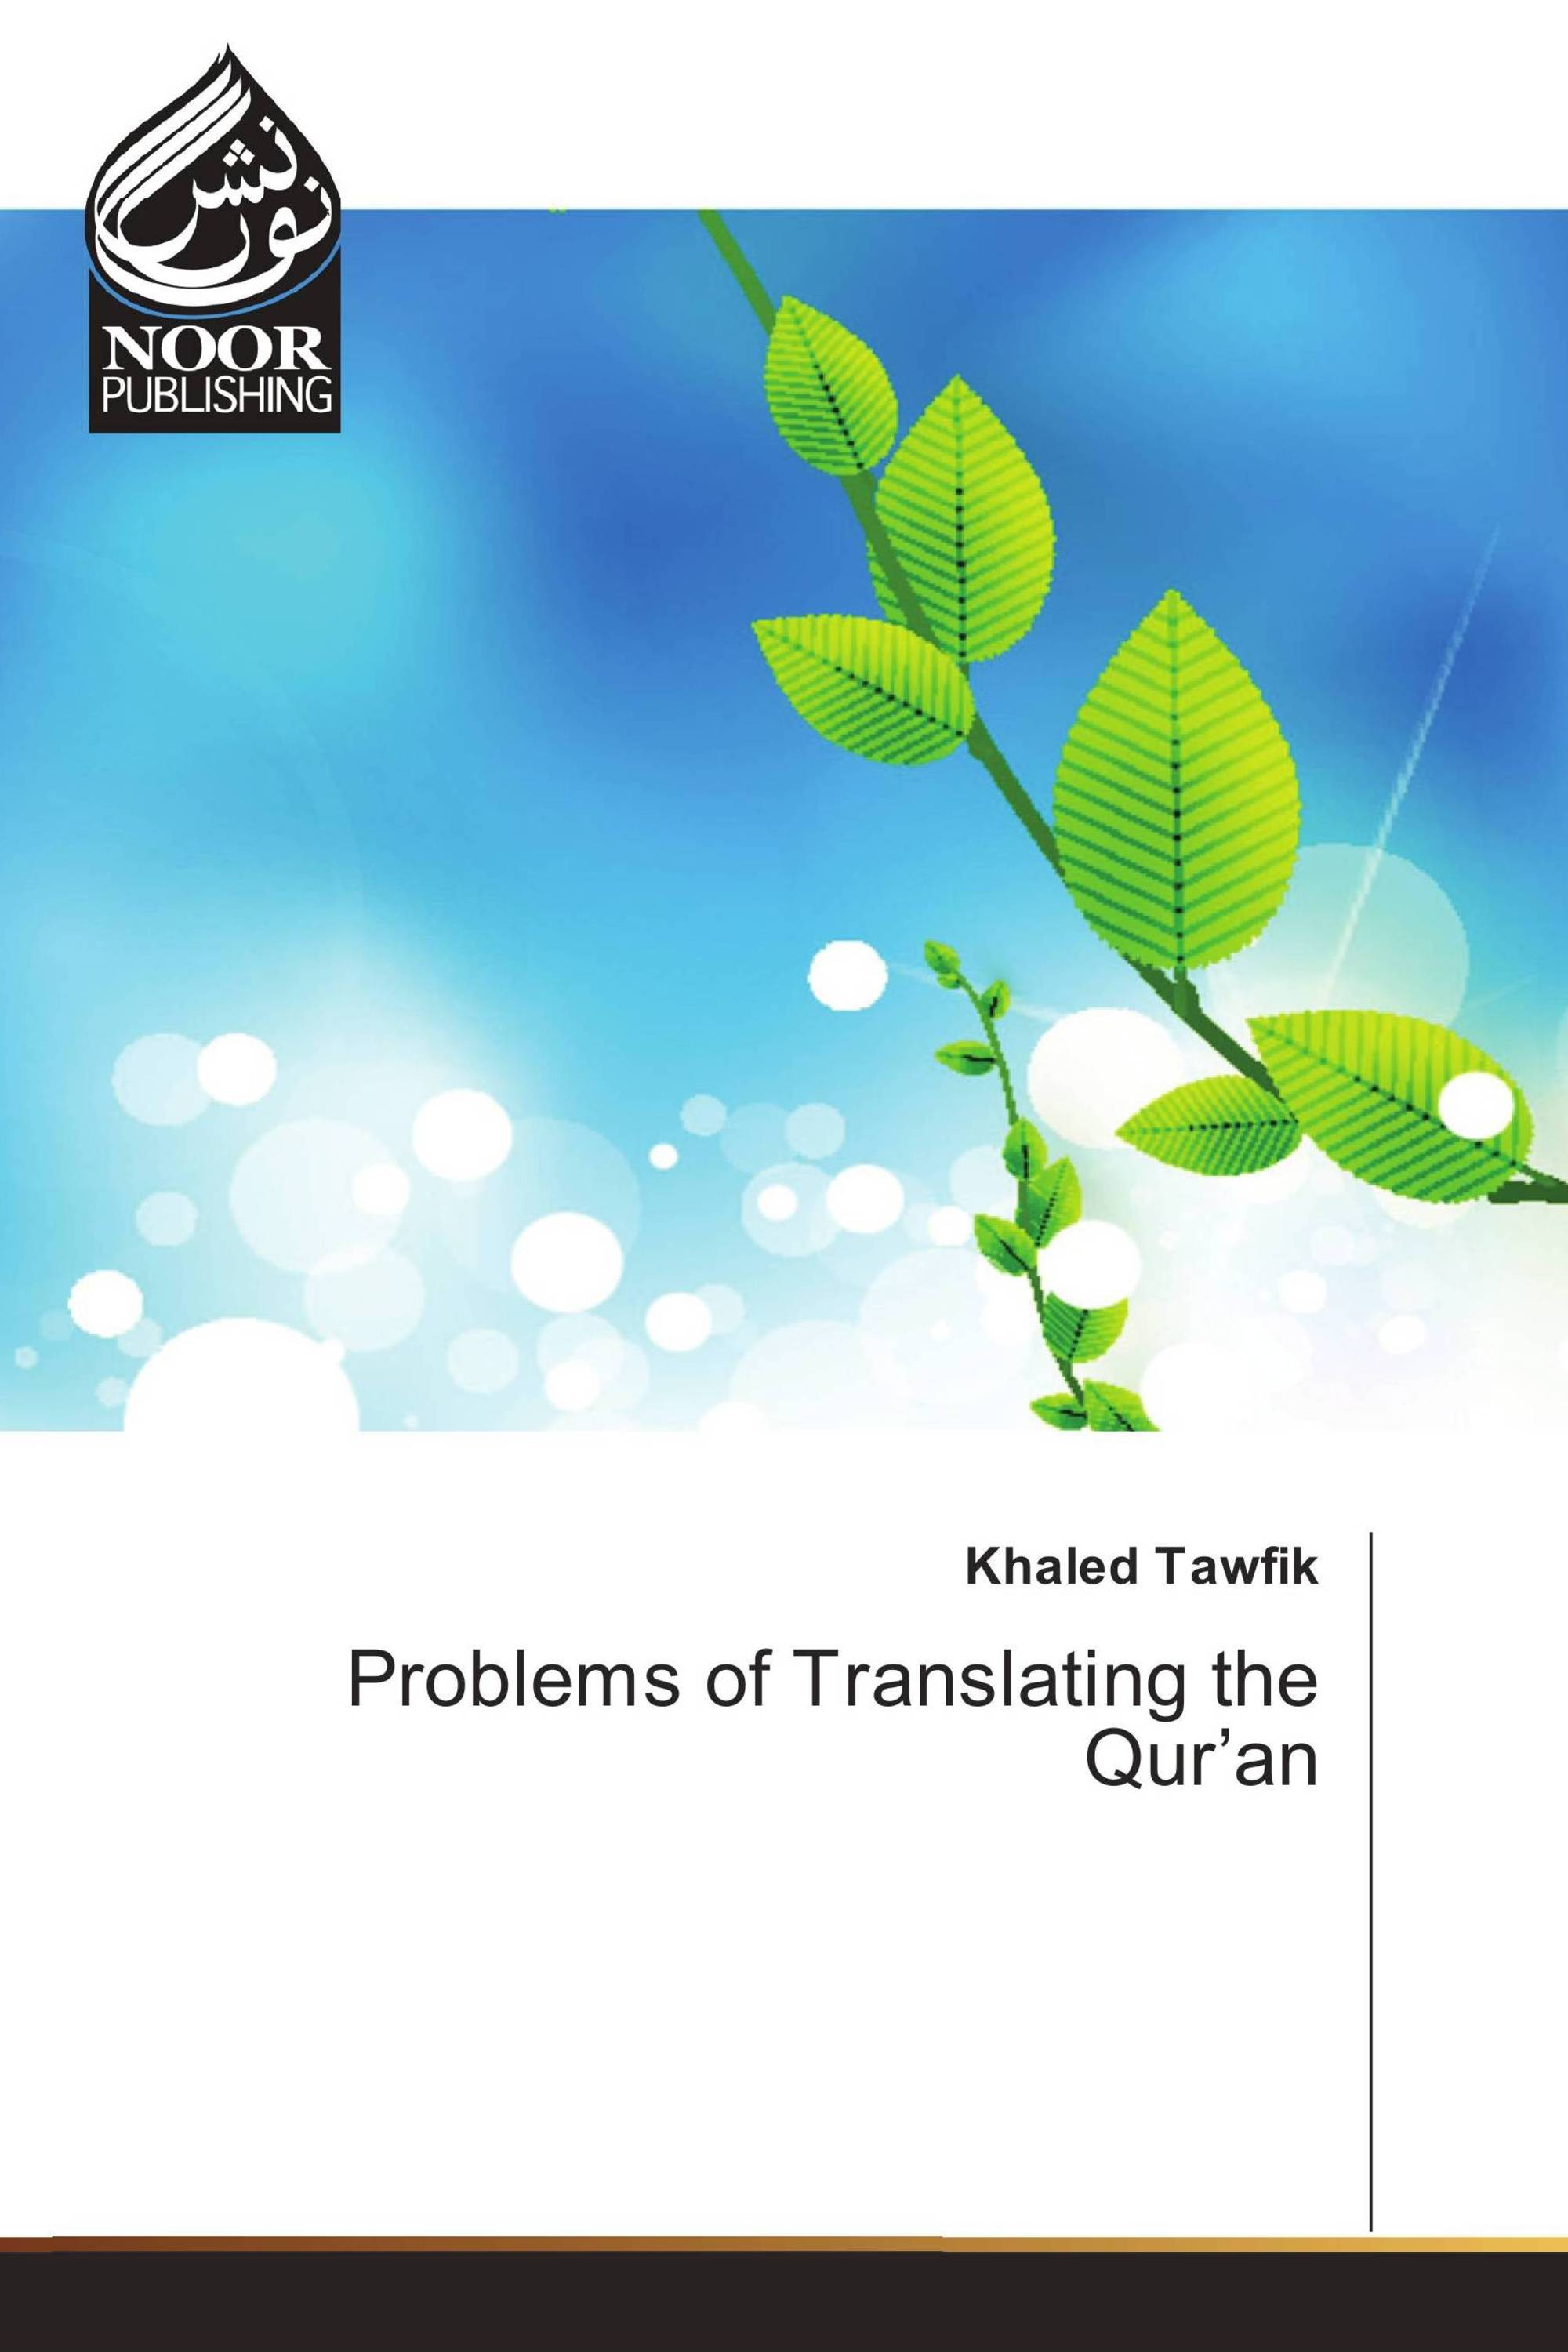 Problems of Translating the Qur'an